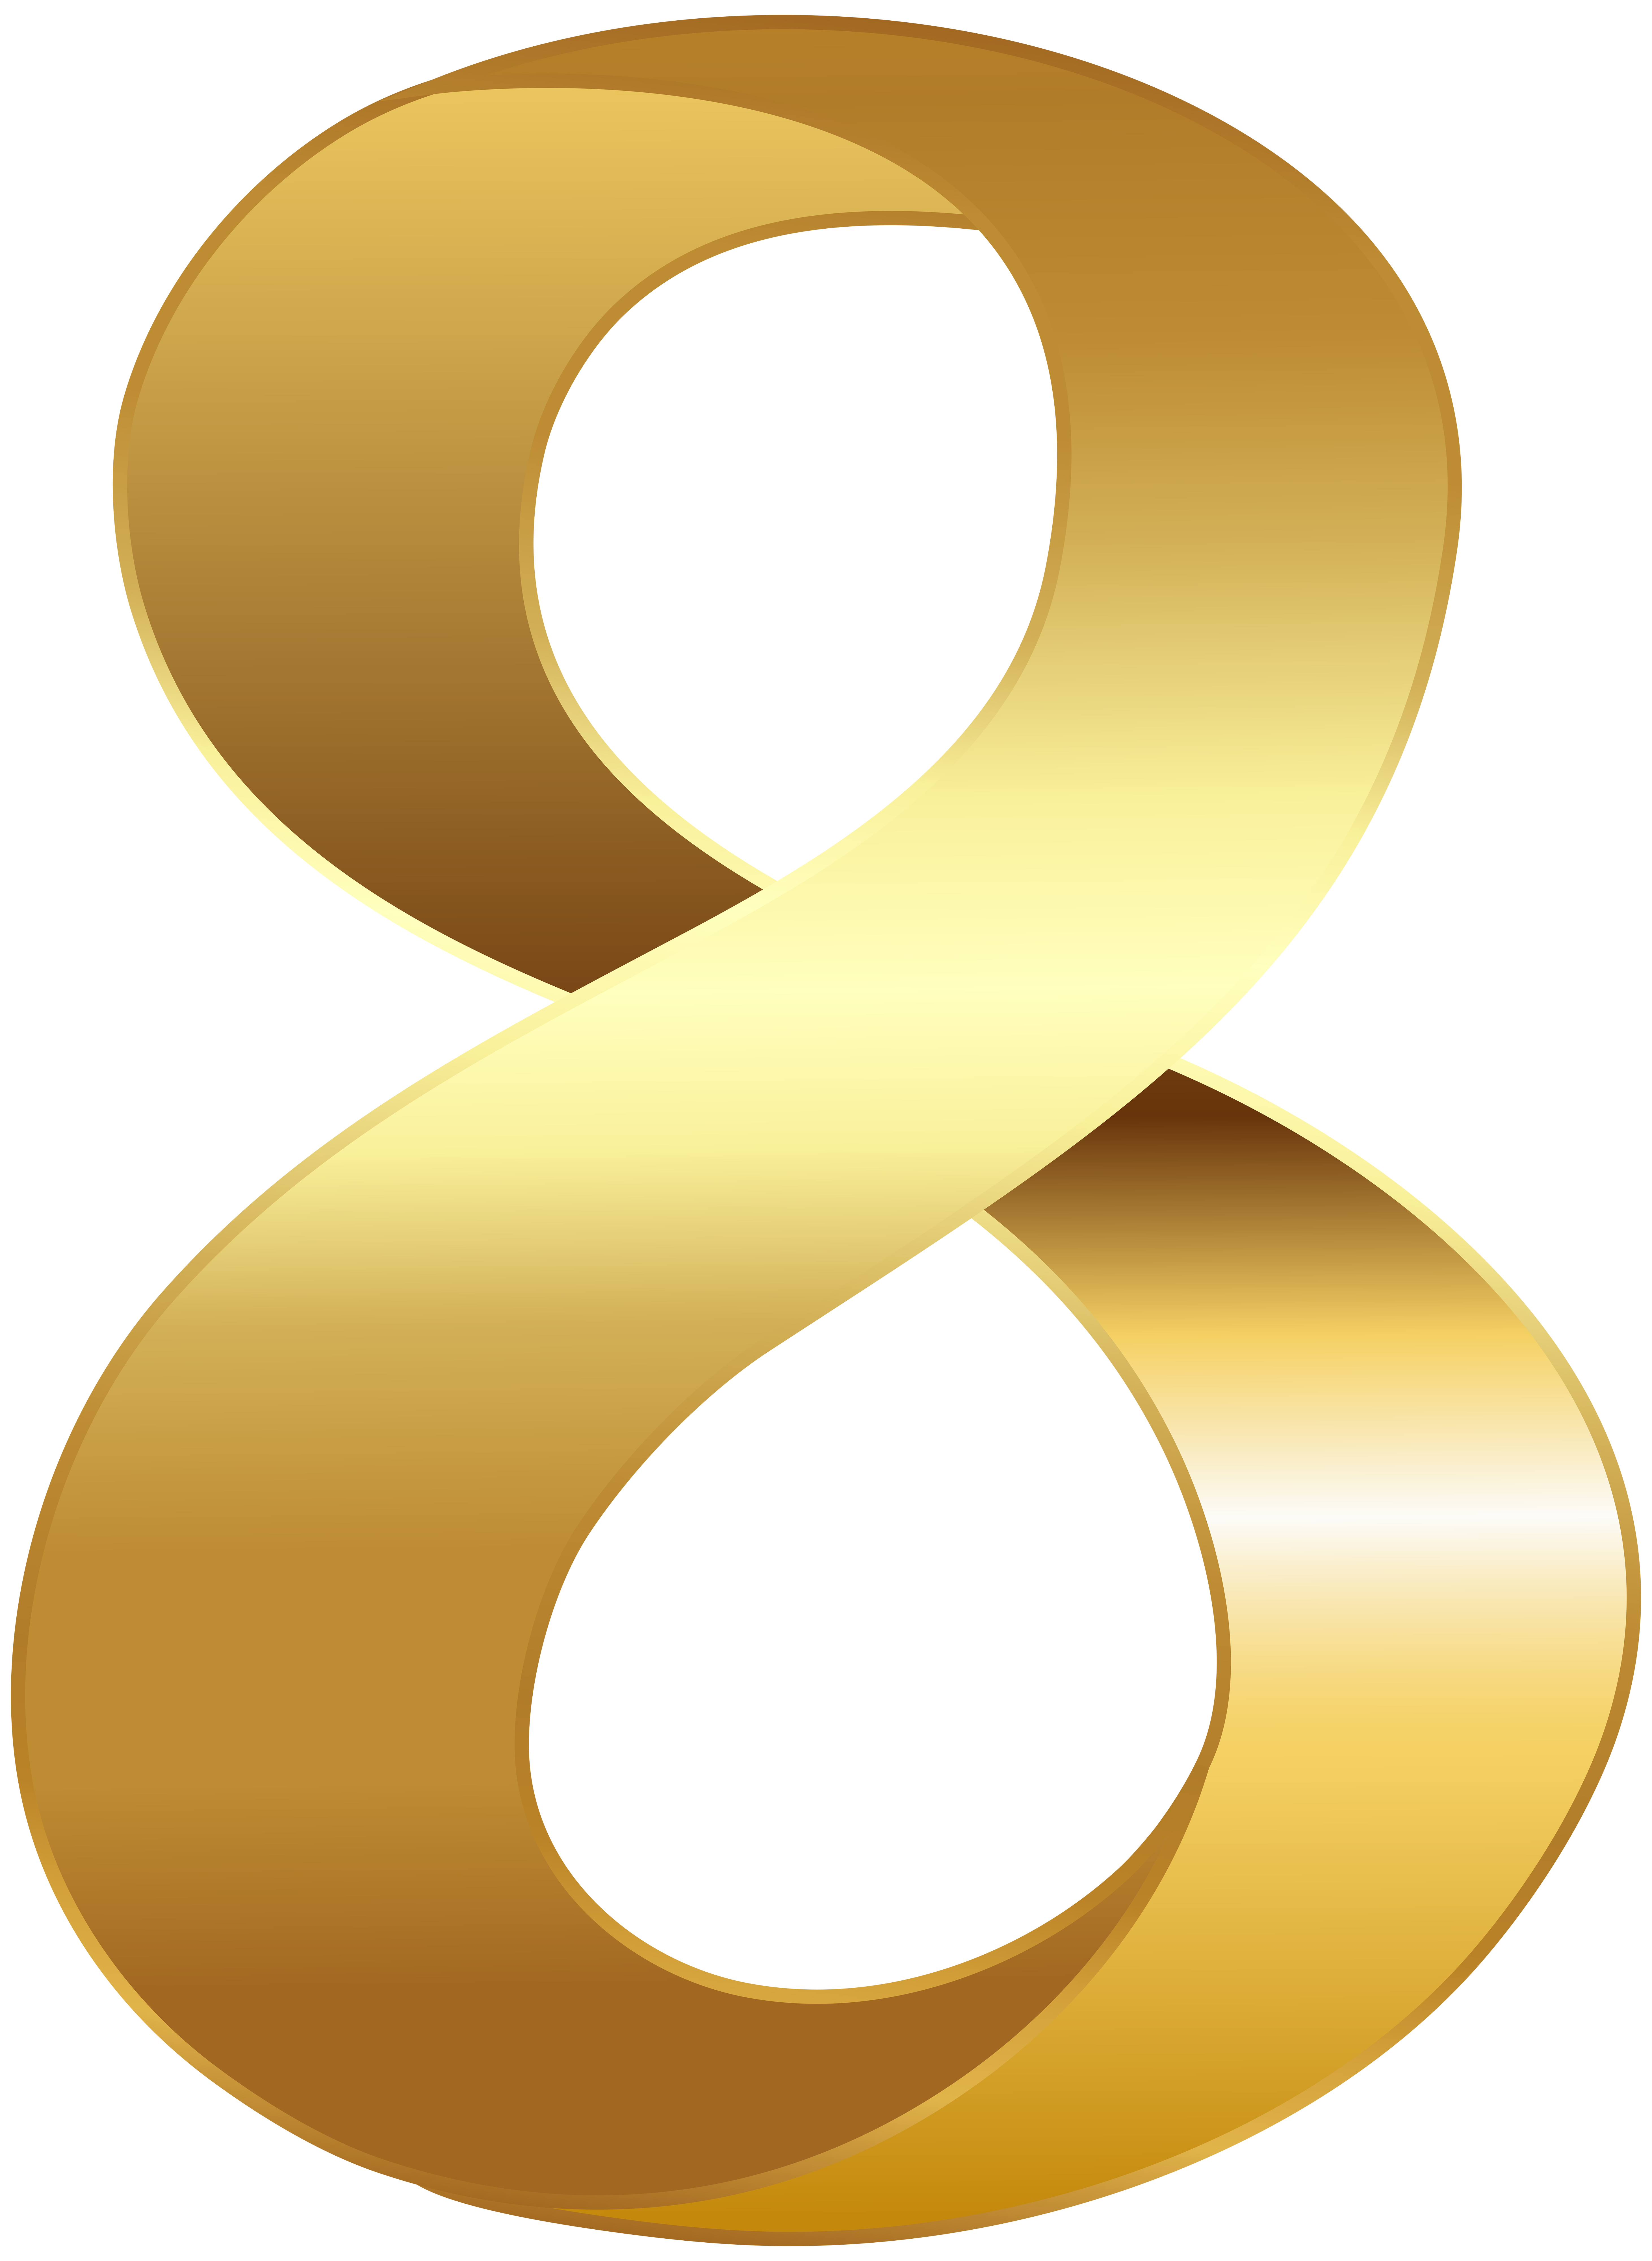 Numbers clipart calligraphy. Golden number eight transparent